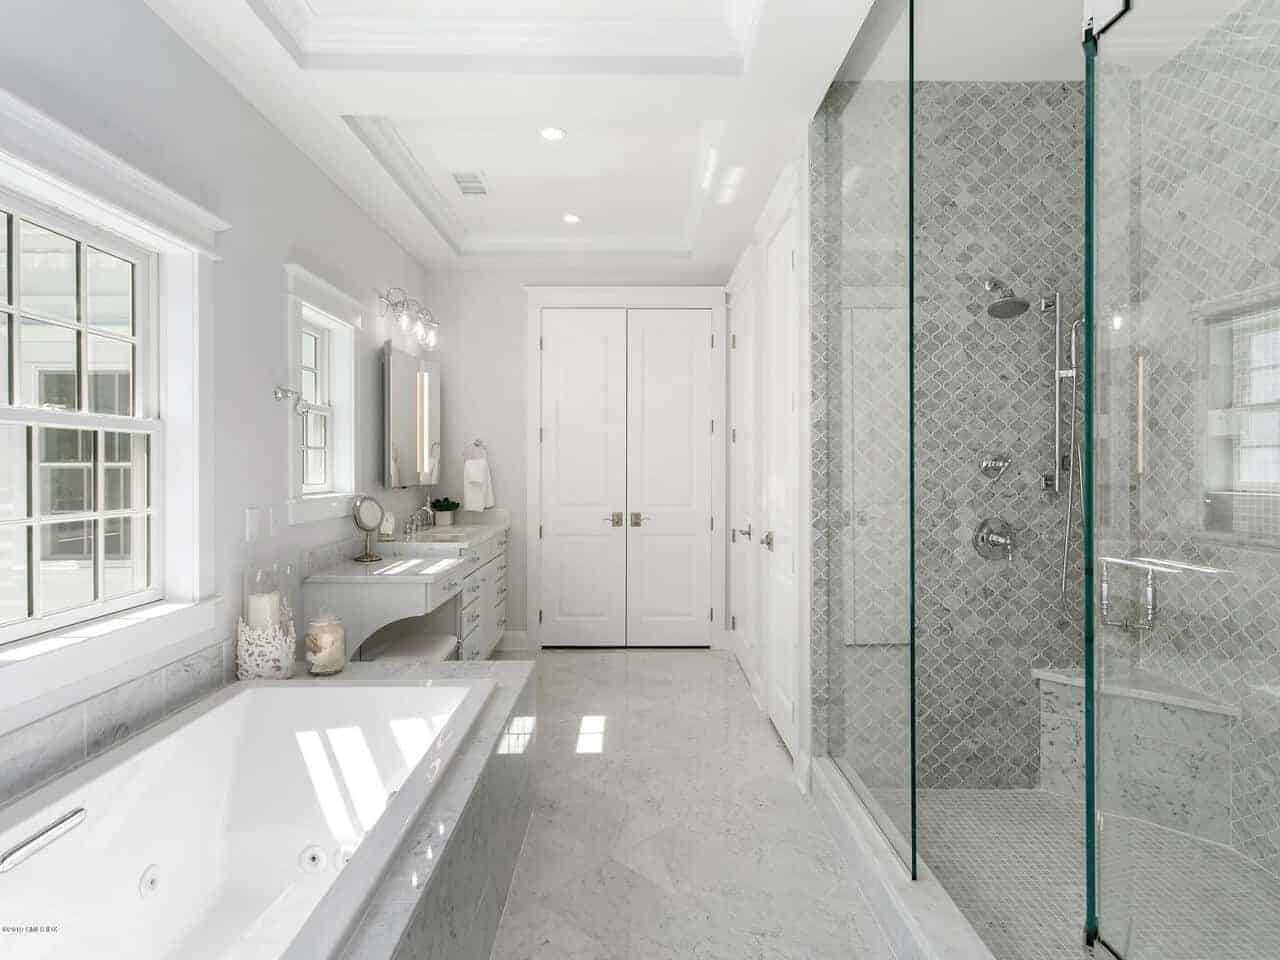 This is a bright and charming primary bathroom that has a hallway in the middle with a white marble flooring that complements the white bathtub across from the shower area that has gray wall tiles and a glass door.